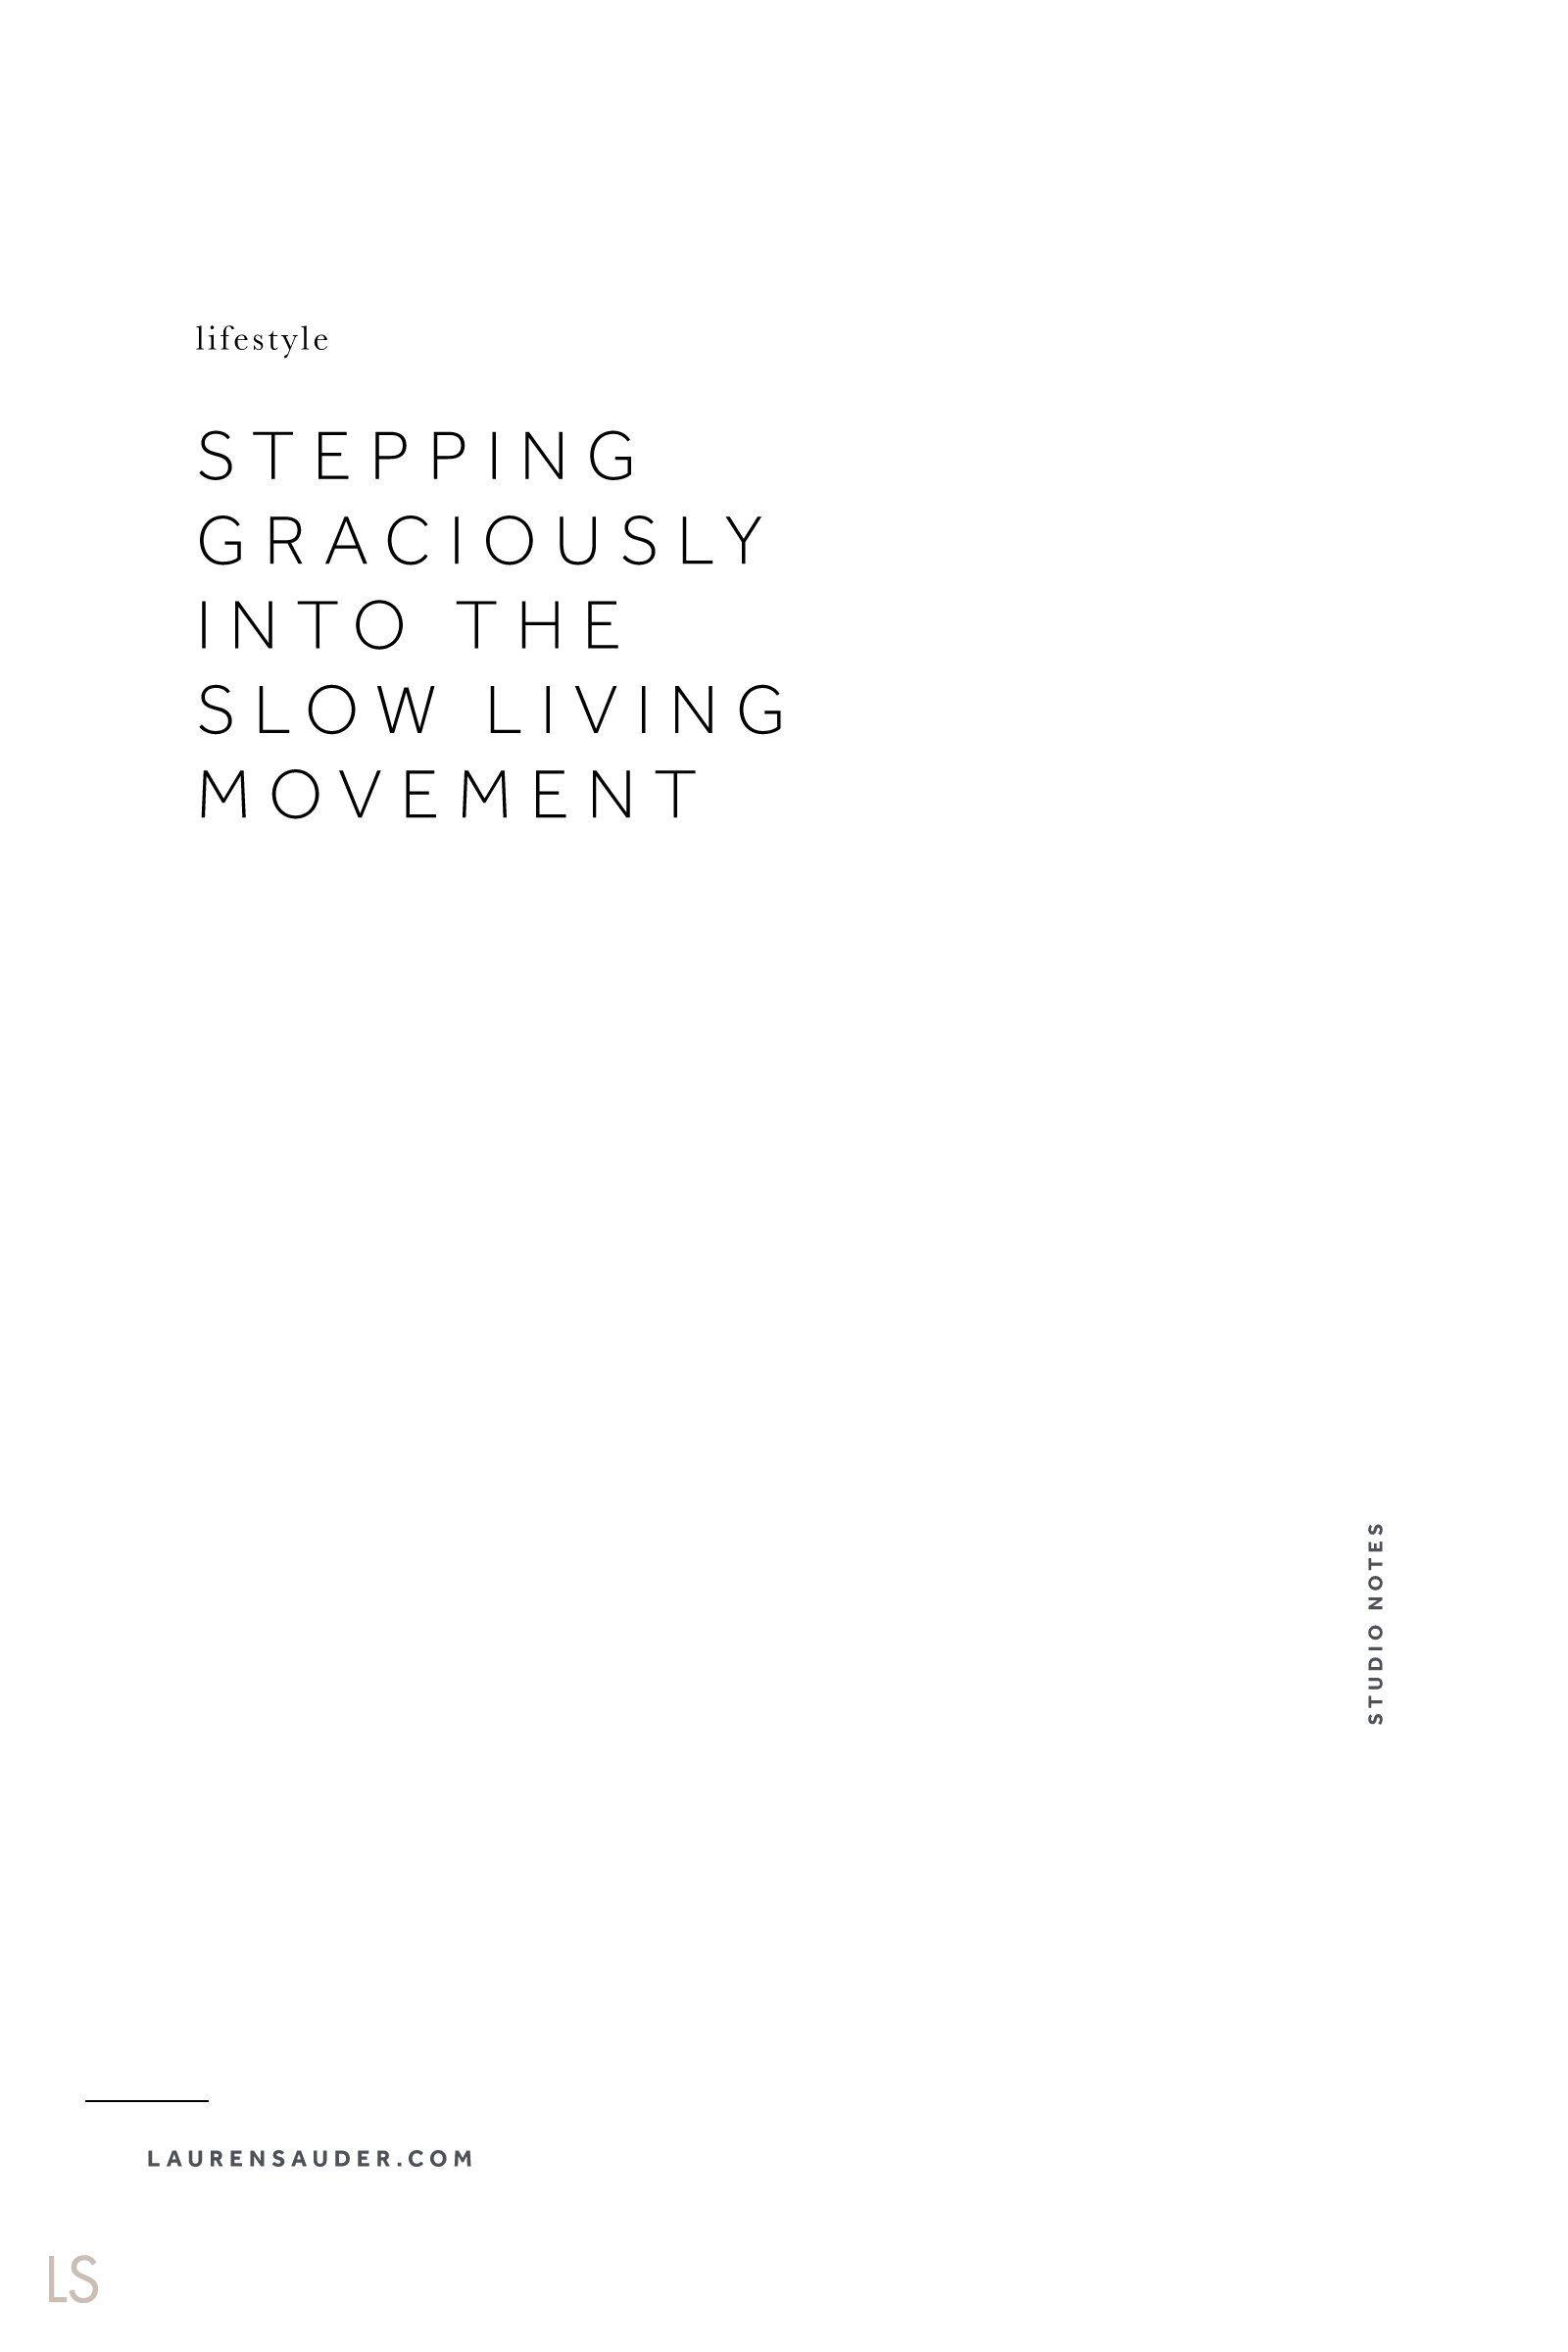 Stepping Graciously Into the Slow Living Movement - Lauren Sauder #slowliving #minimalism slow living, slow living tips, slow living definition,  live slow, the art of slow living, a quiet style